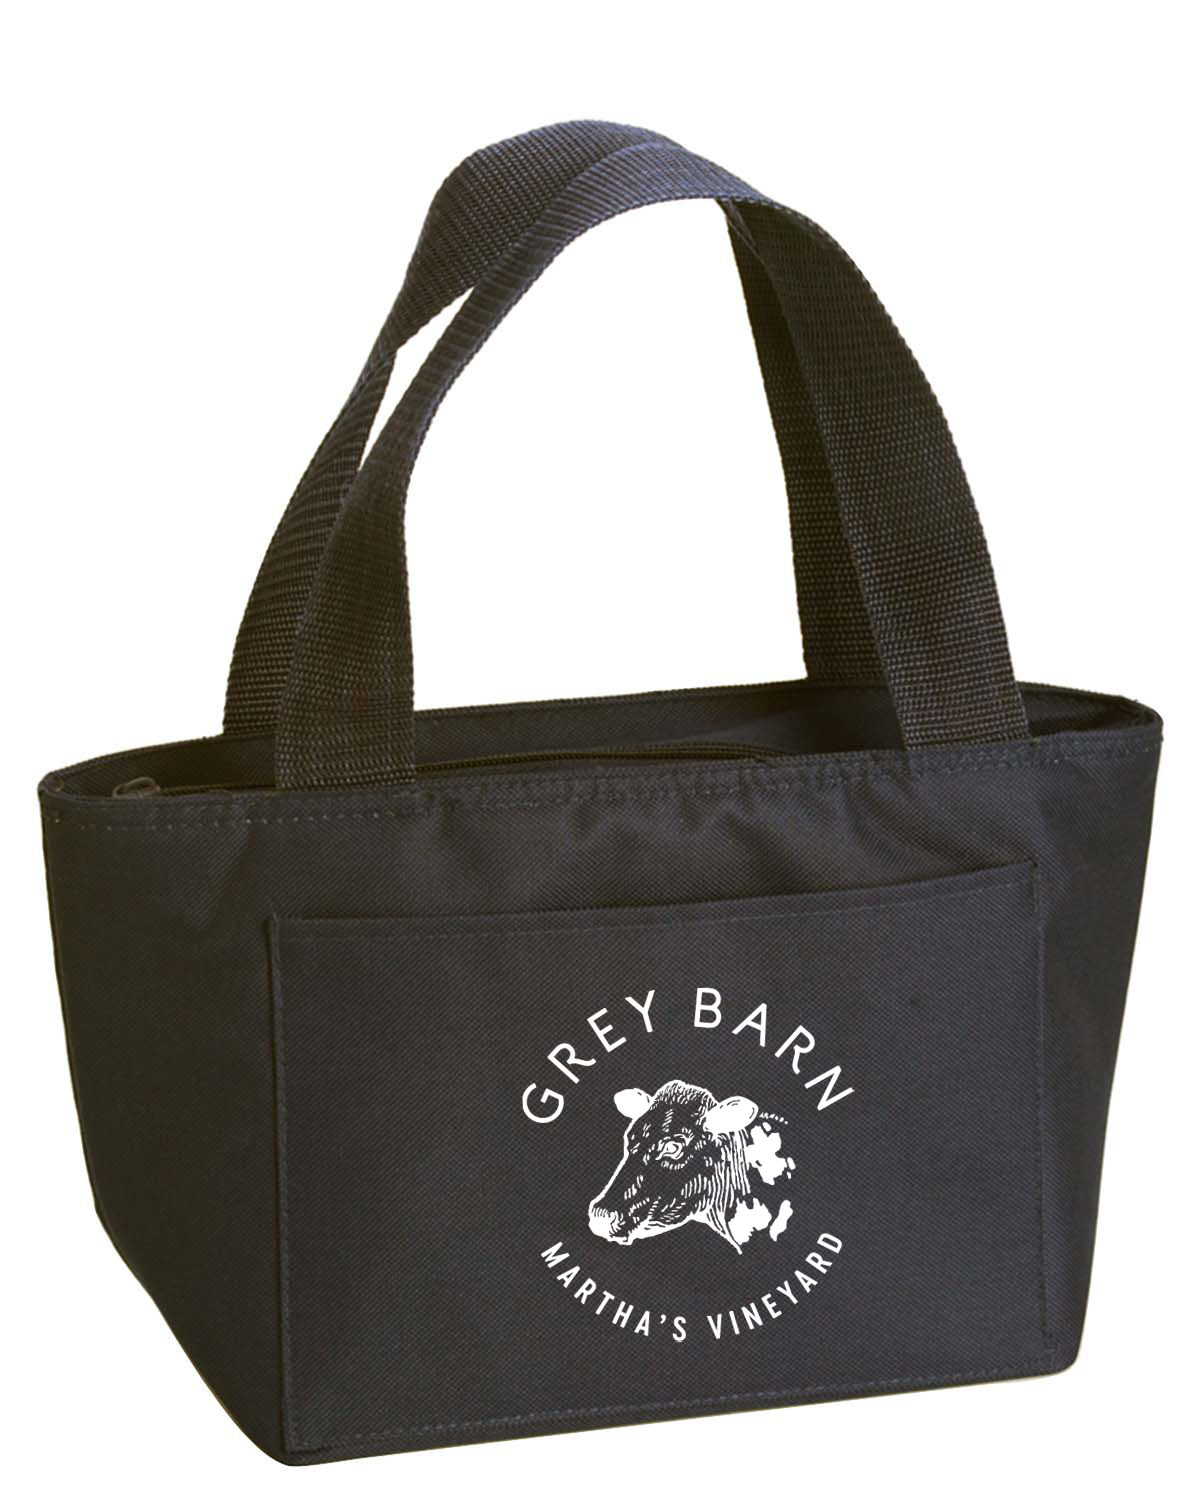 custom design of Liberty Bags Recycled Cooler Tote-8808